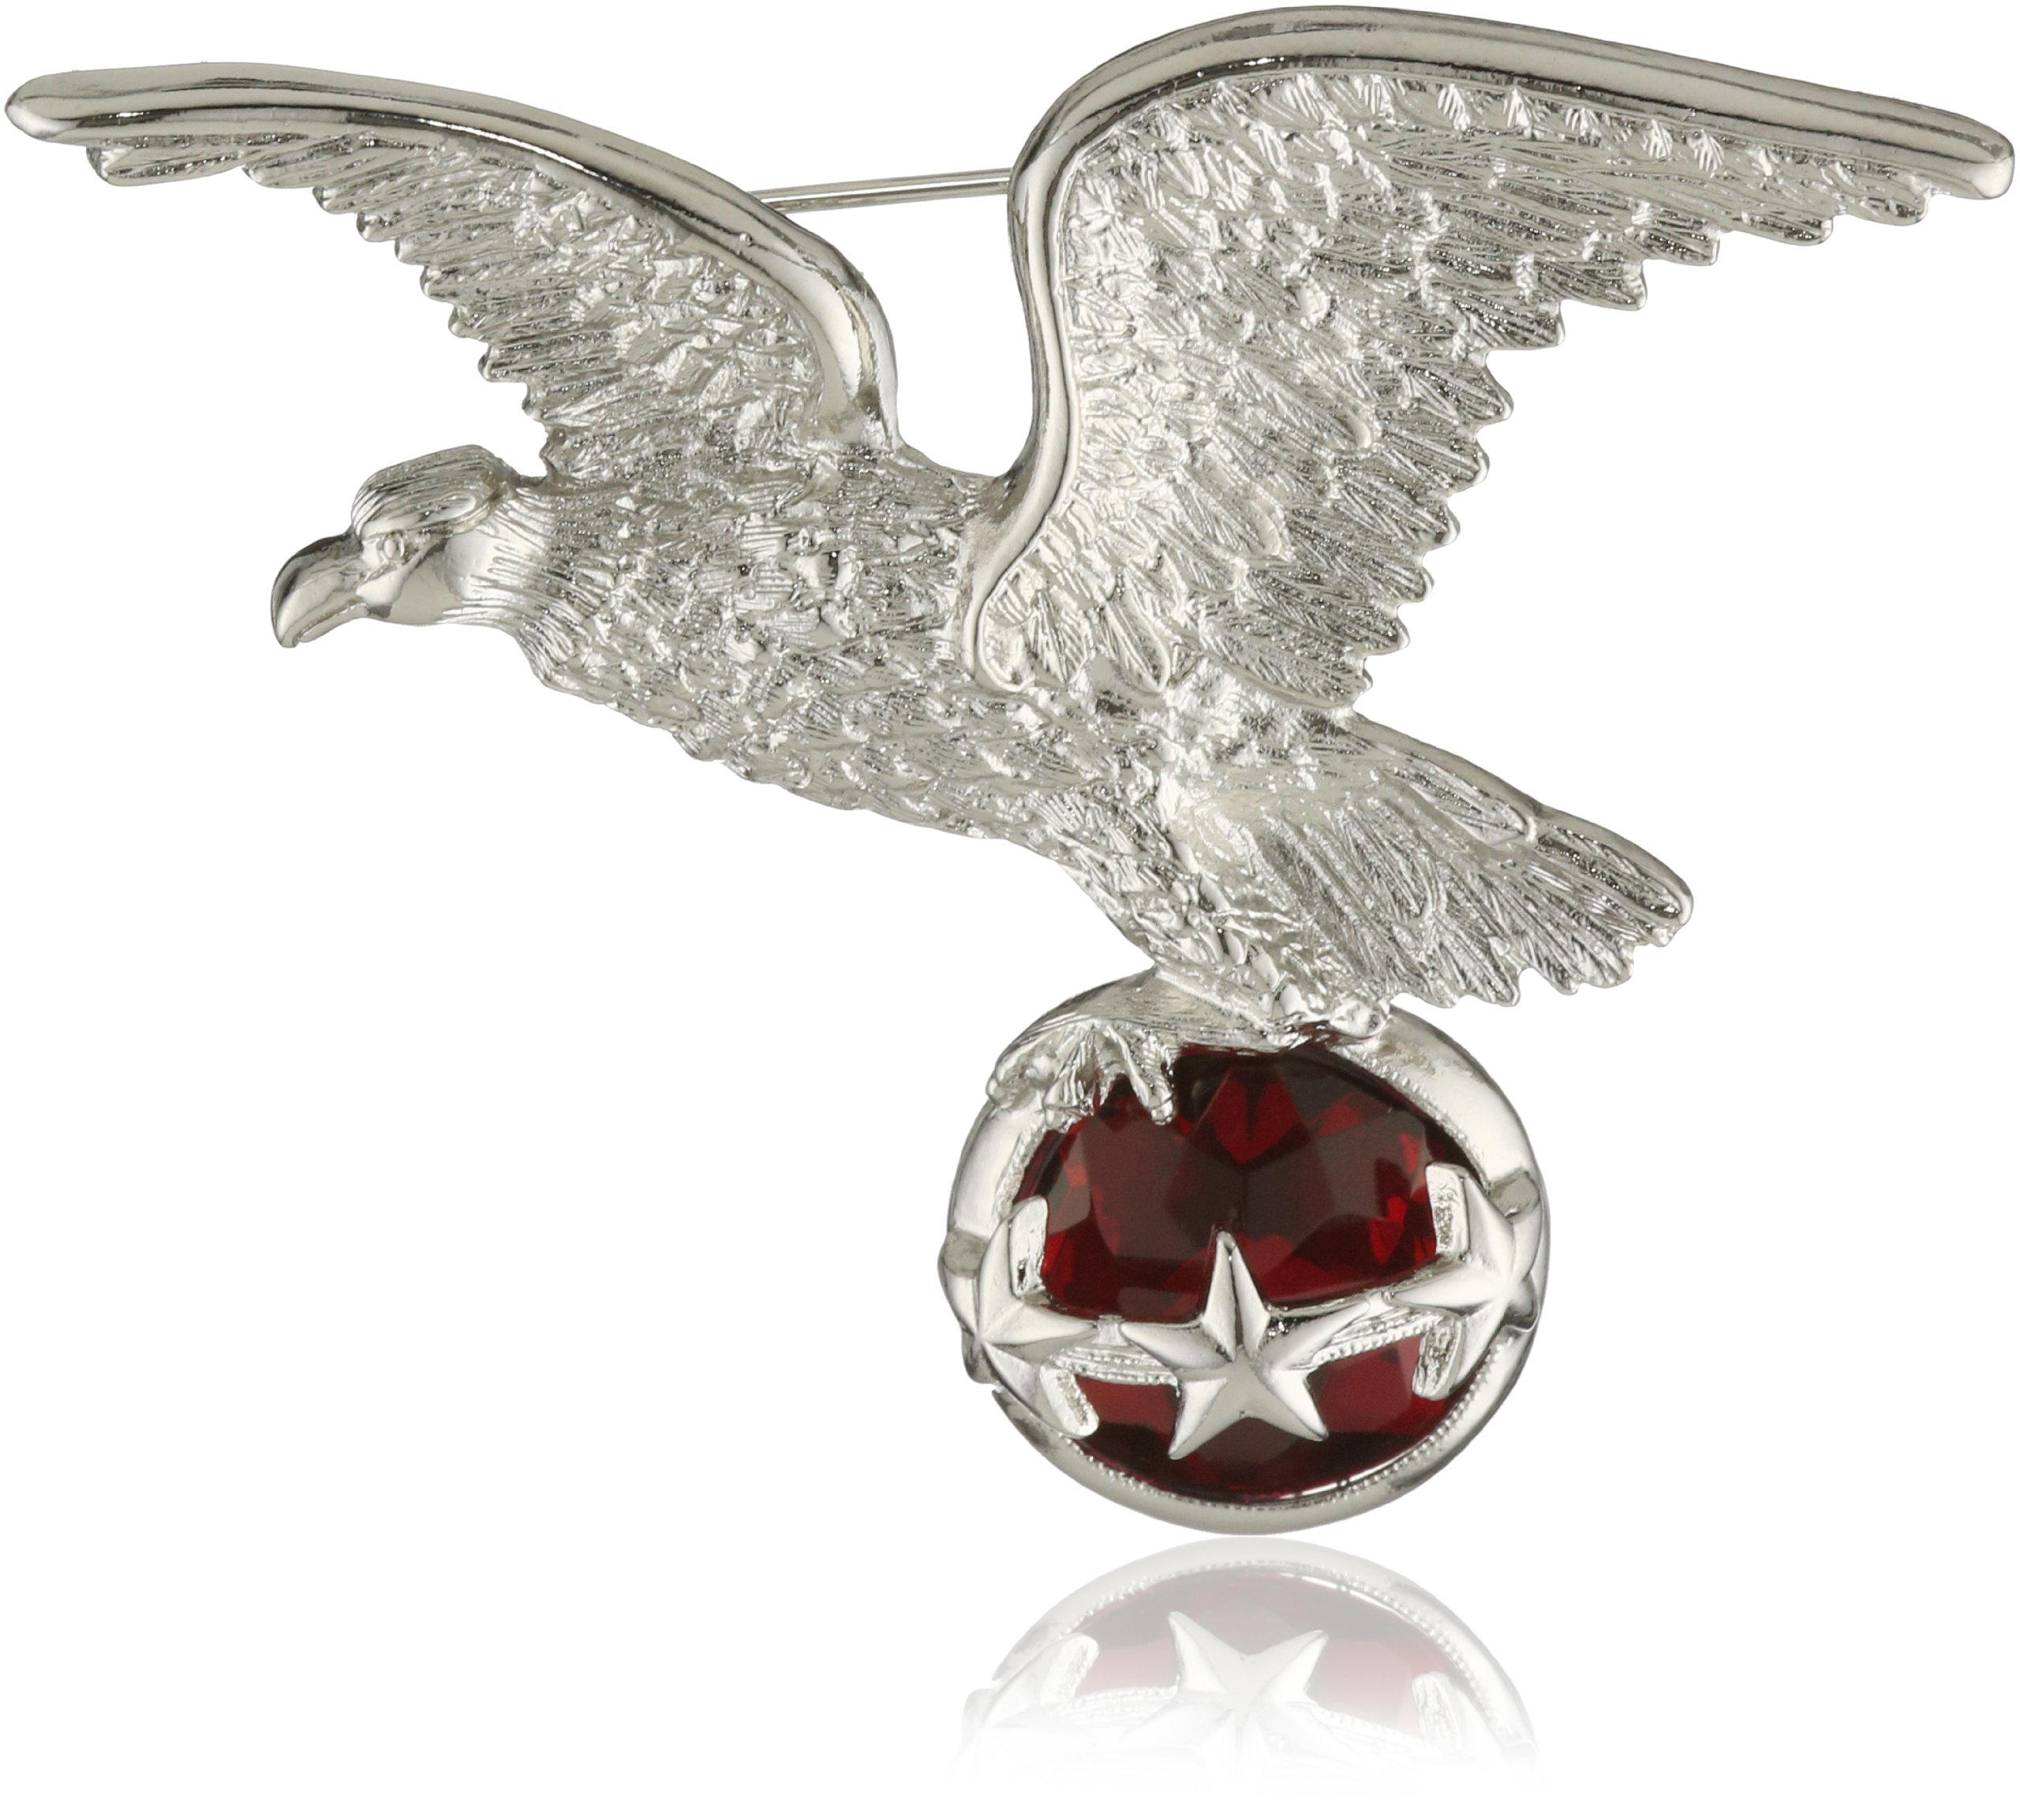 1928 Jewelry Made in America USA Eagle Brooch